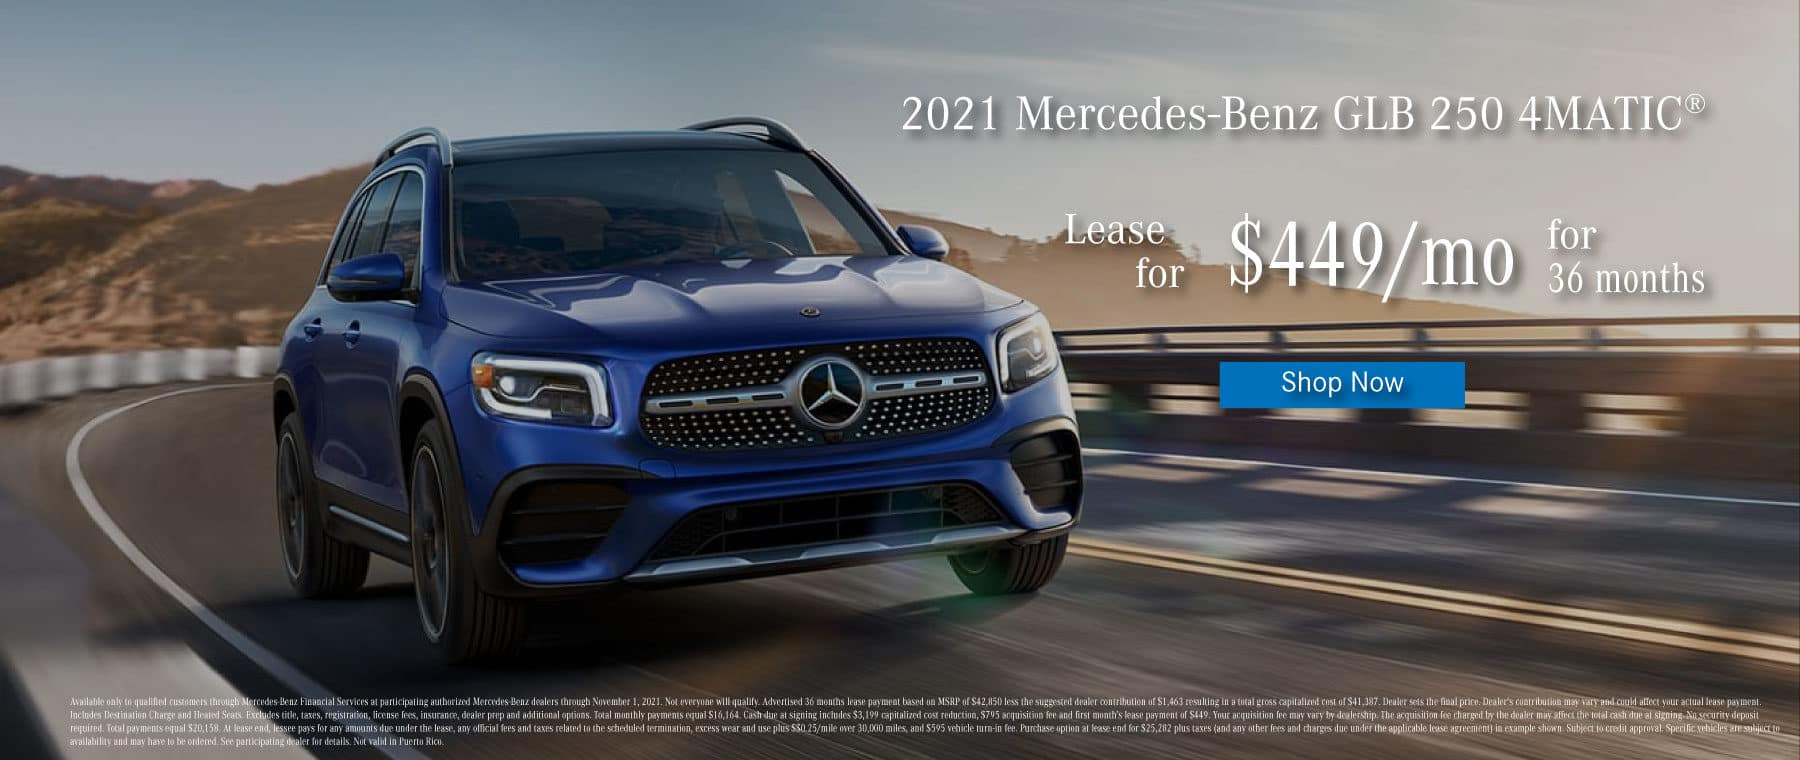 mercedes-benz of chantilly mercedes GLB 250 suv AWD lease special